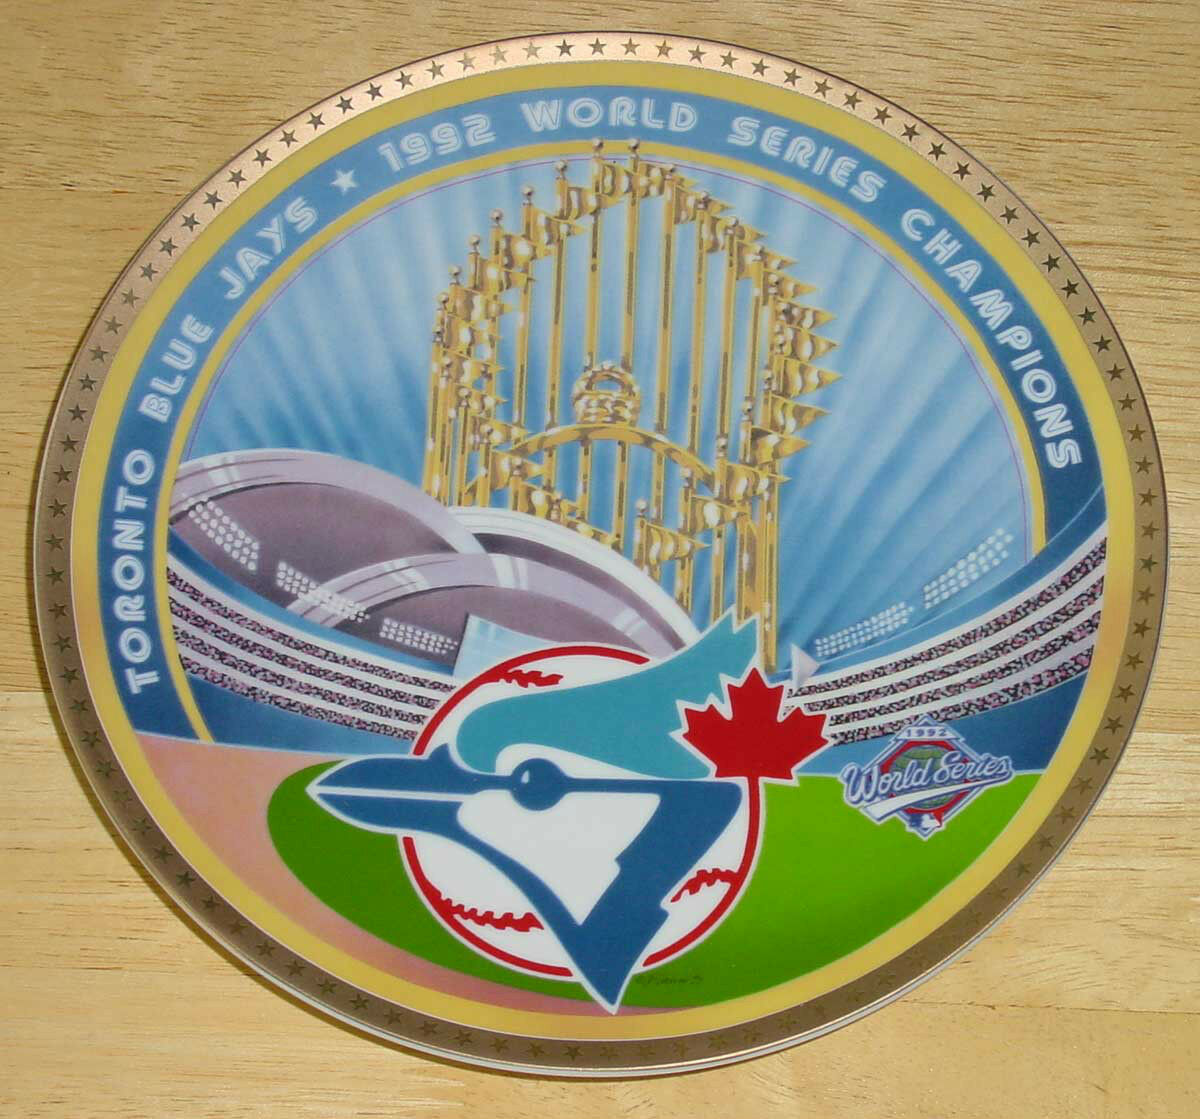 TgoldNTO blueE JAYS 1992 WORLD SERIES CHAMPIONS PLATE BY SPORTS IMPRESSIONS